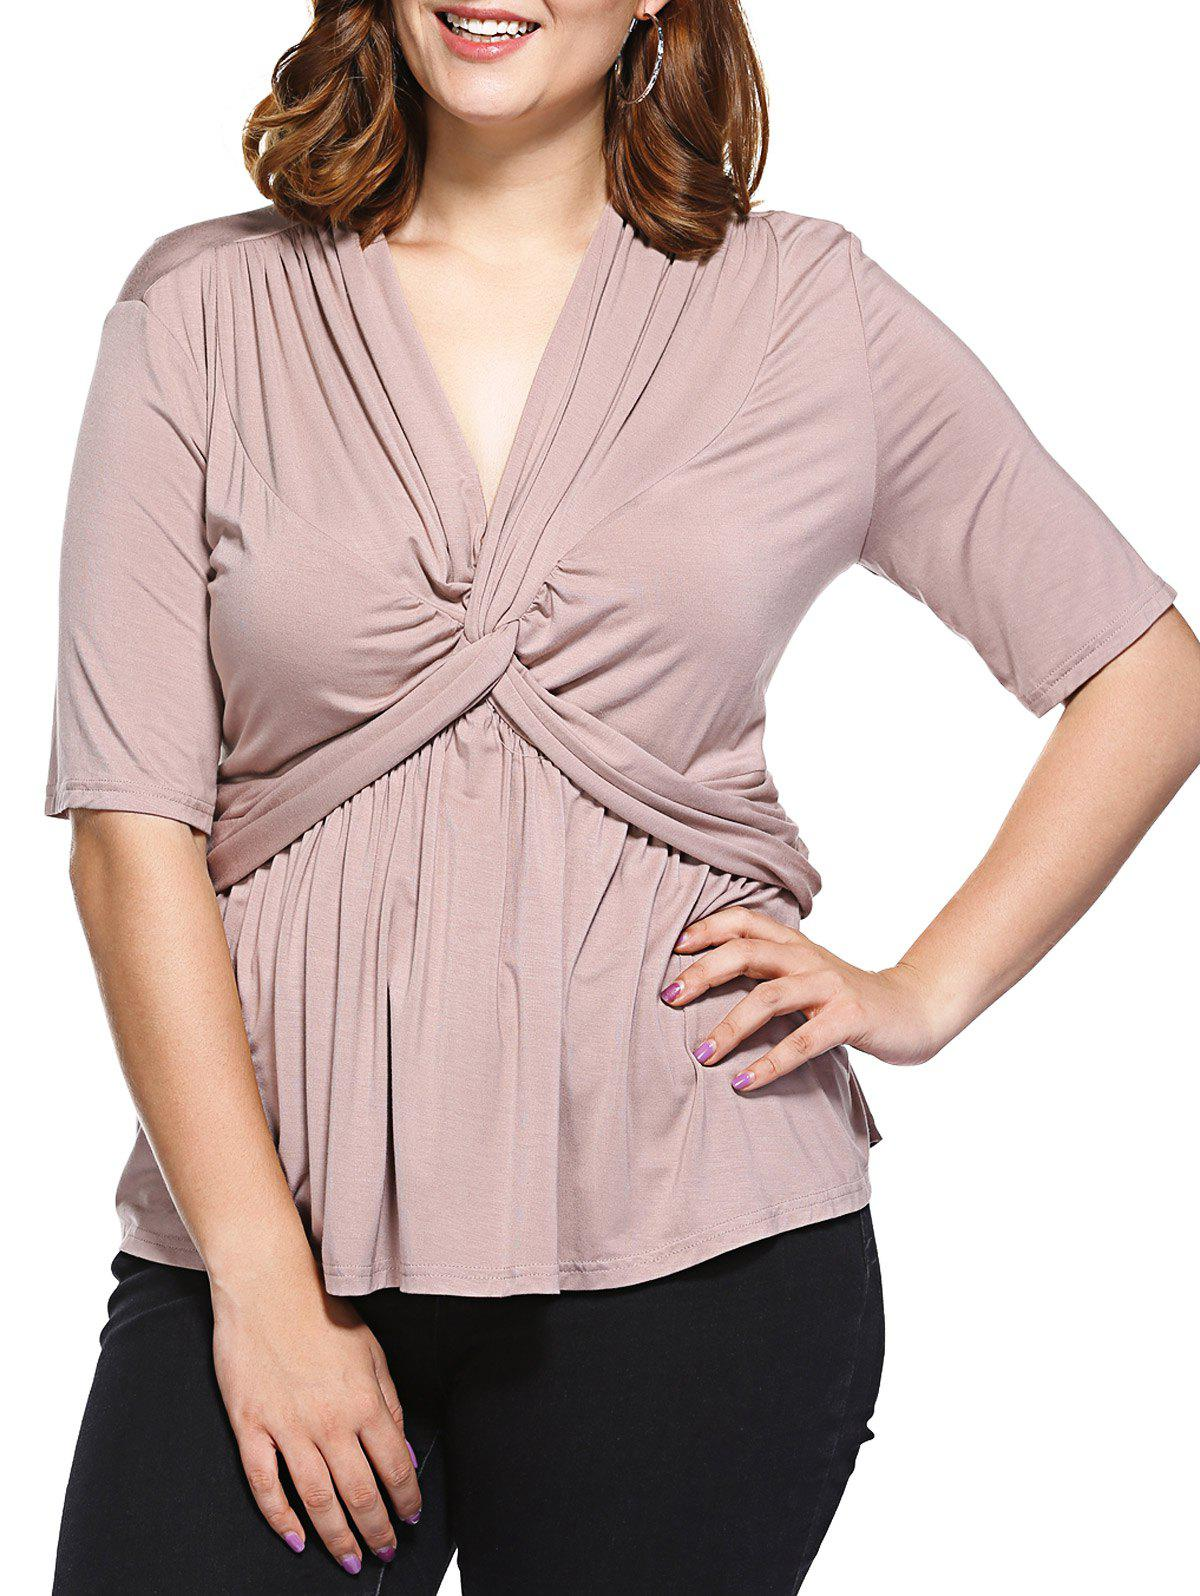 Fashionable V-Neck Fitted Tangle Up Top For Women - APRICOT XL